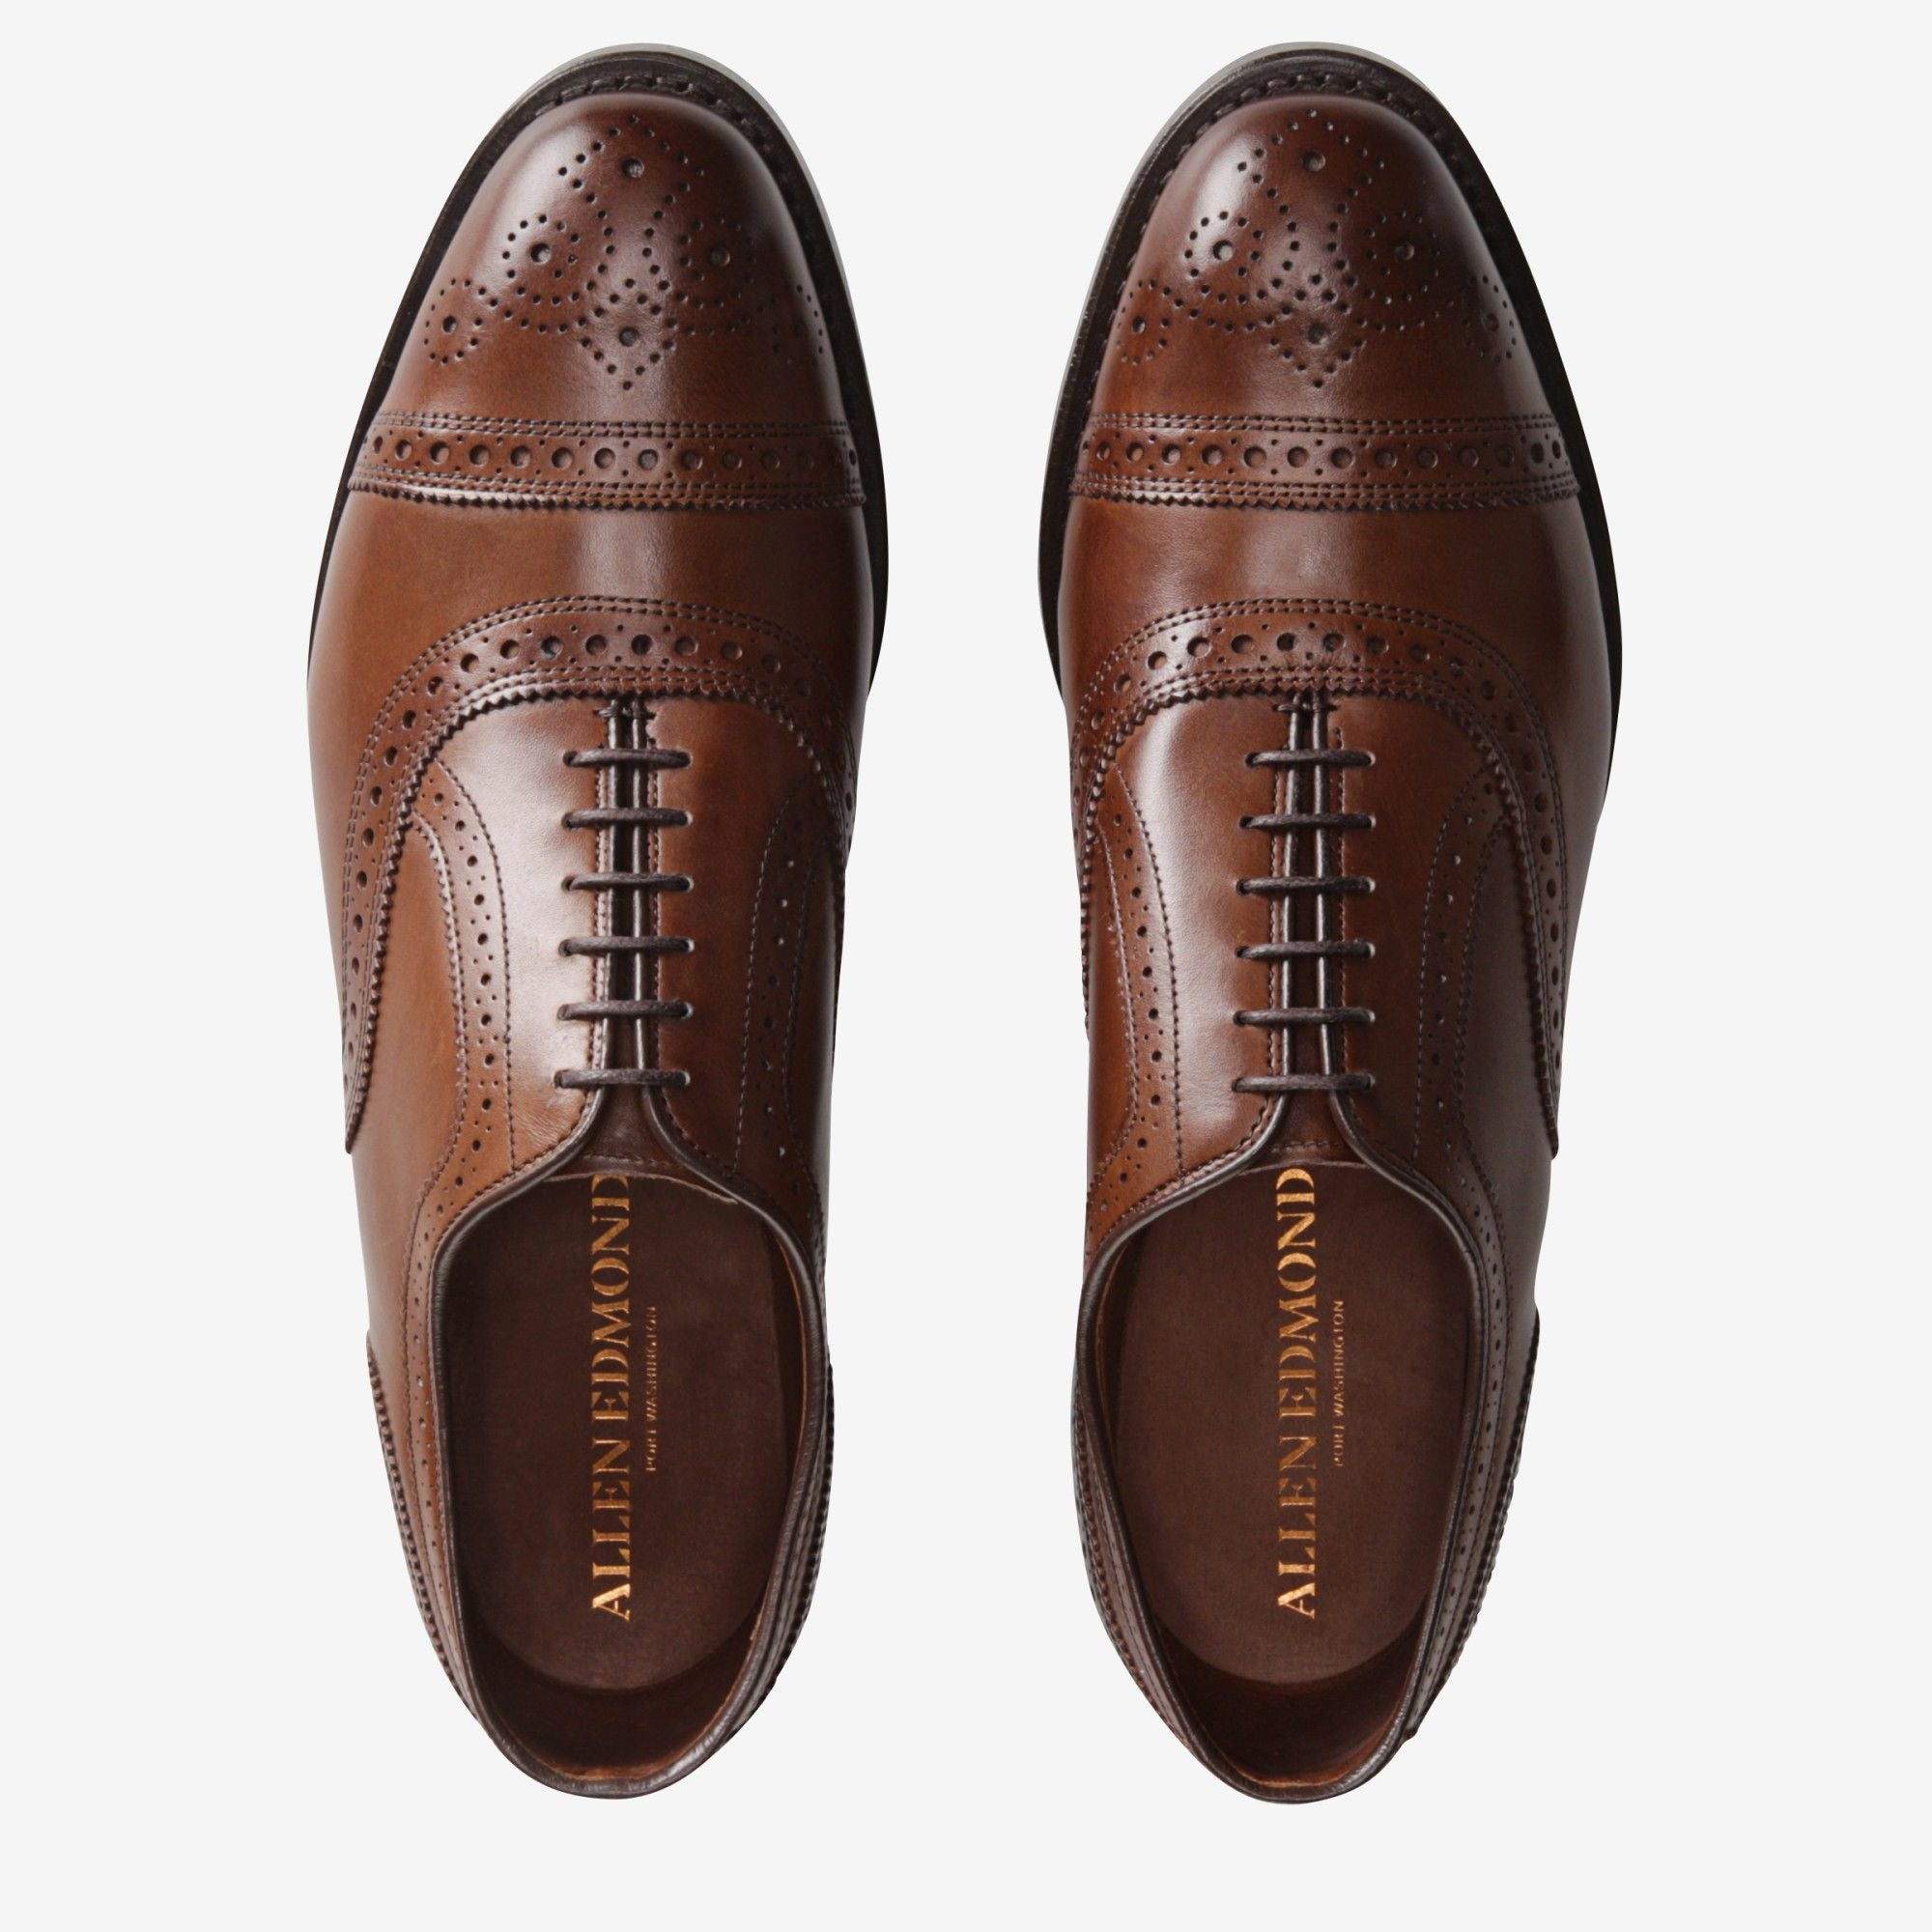 Strand Cap-toe Oxford with Dainite Rubber Sole